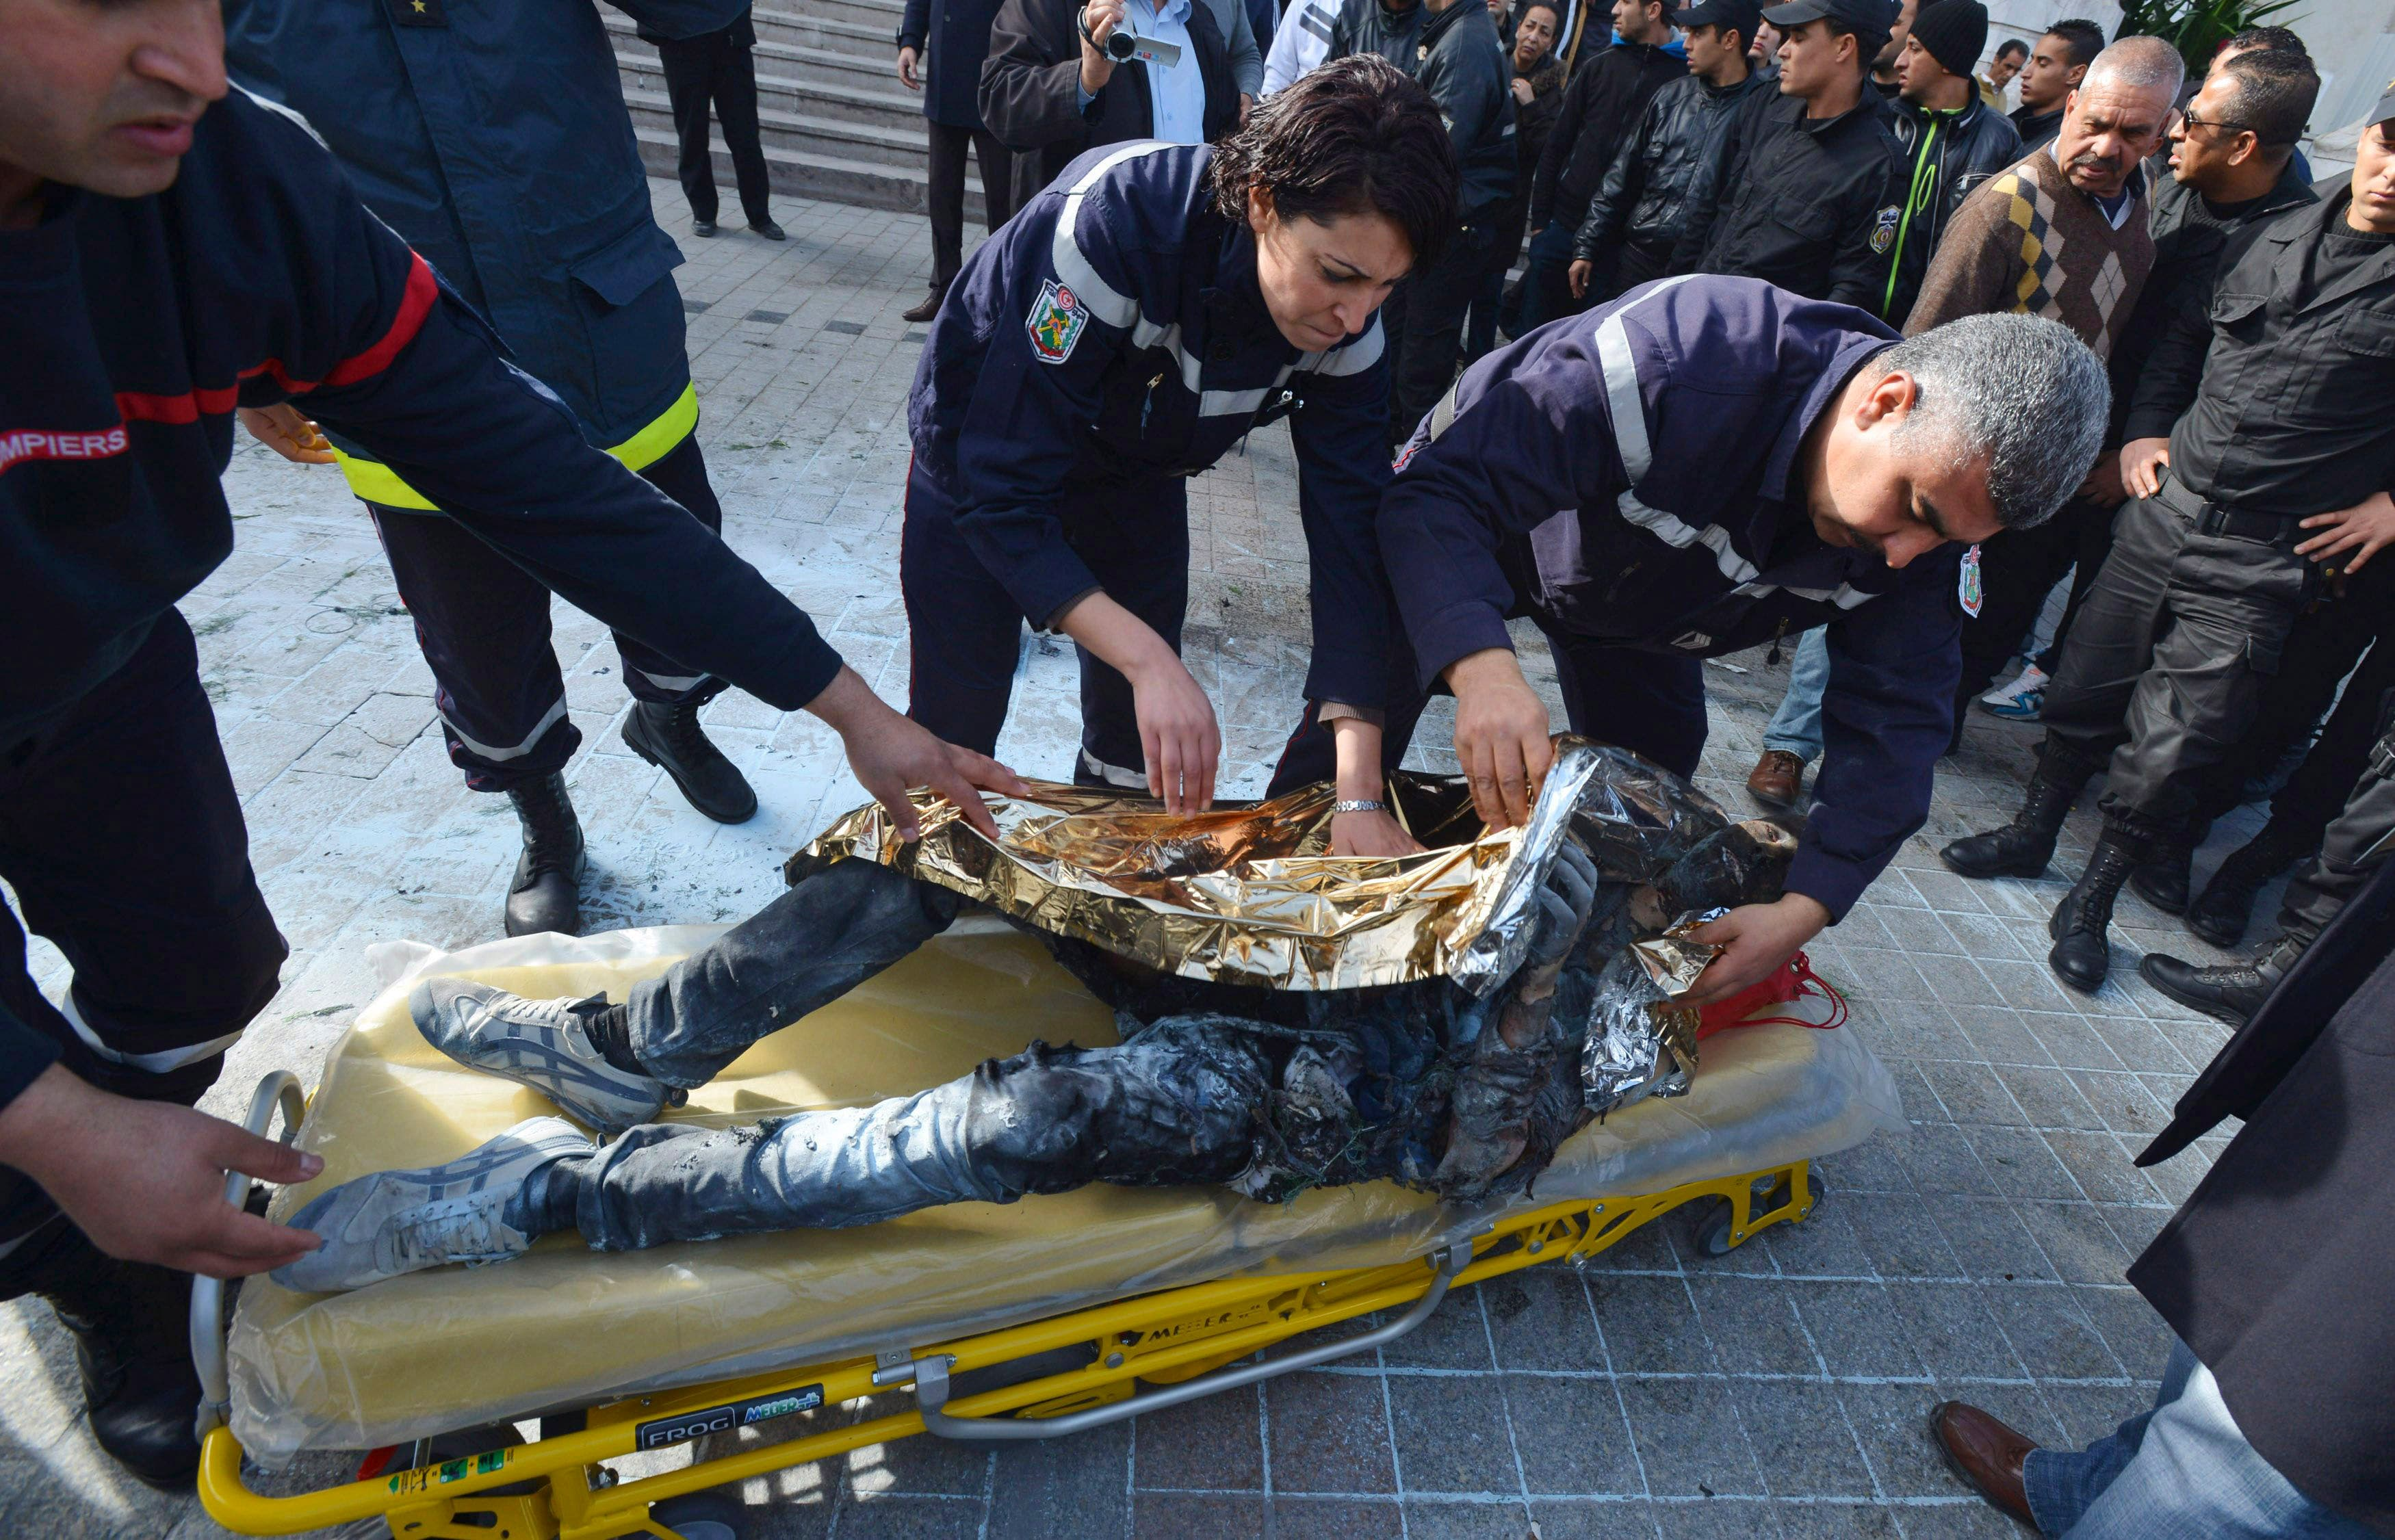 Tunisian vendor who set himself on fire dies